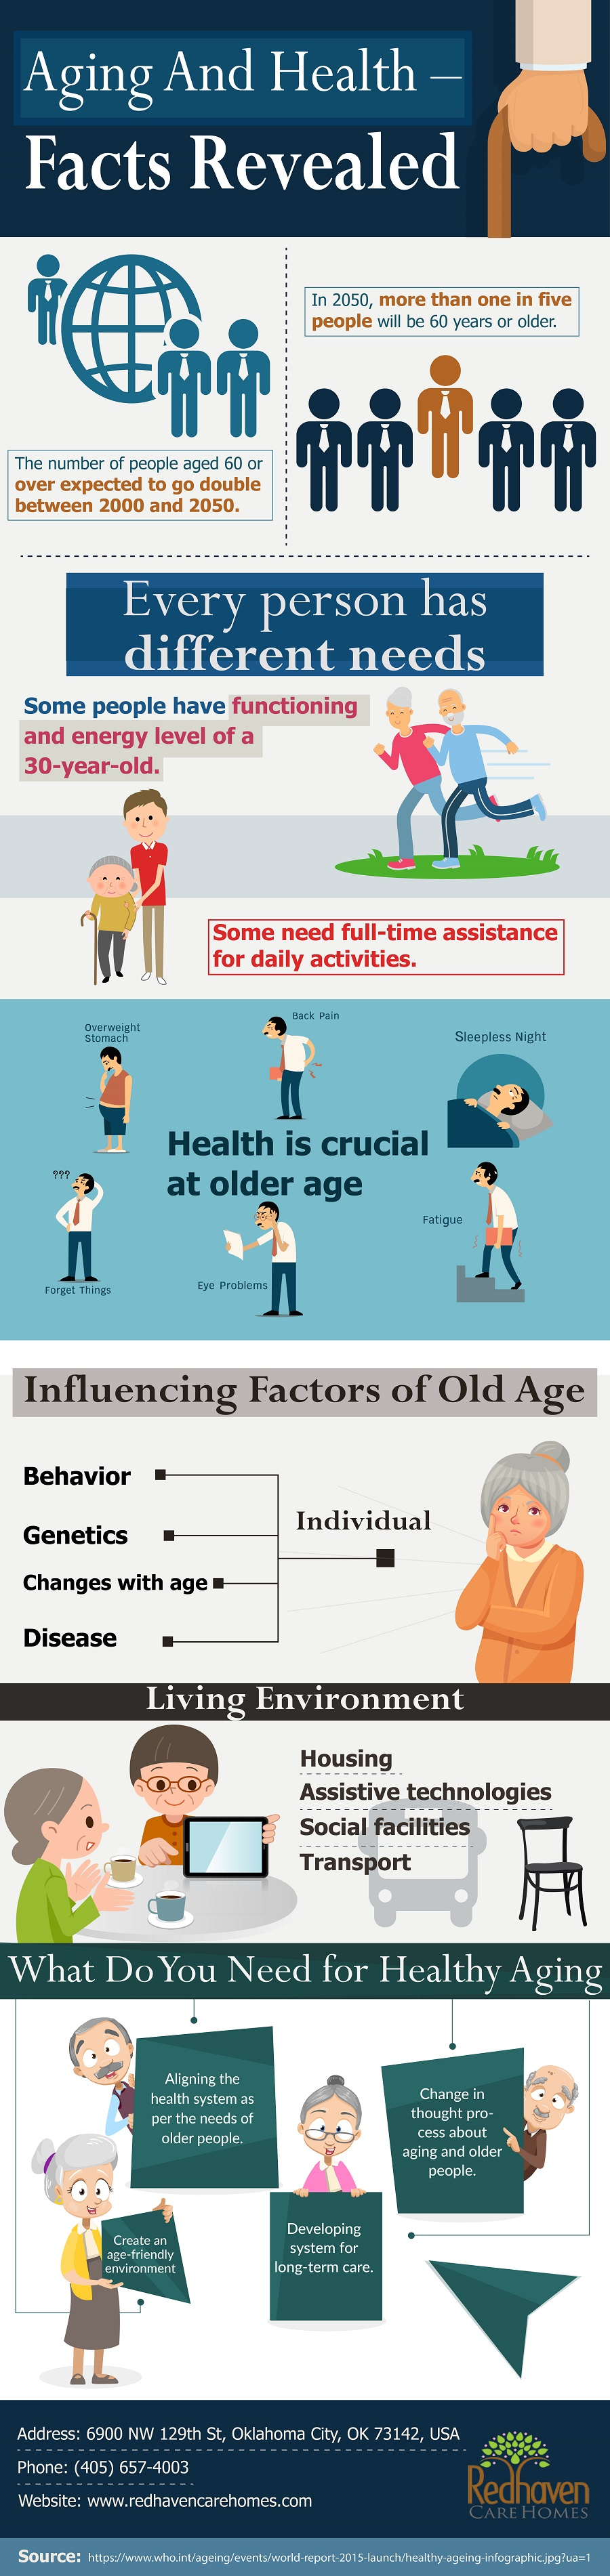 Aging and health facts revealed